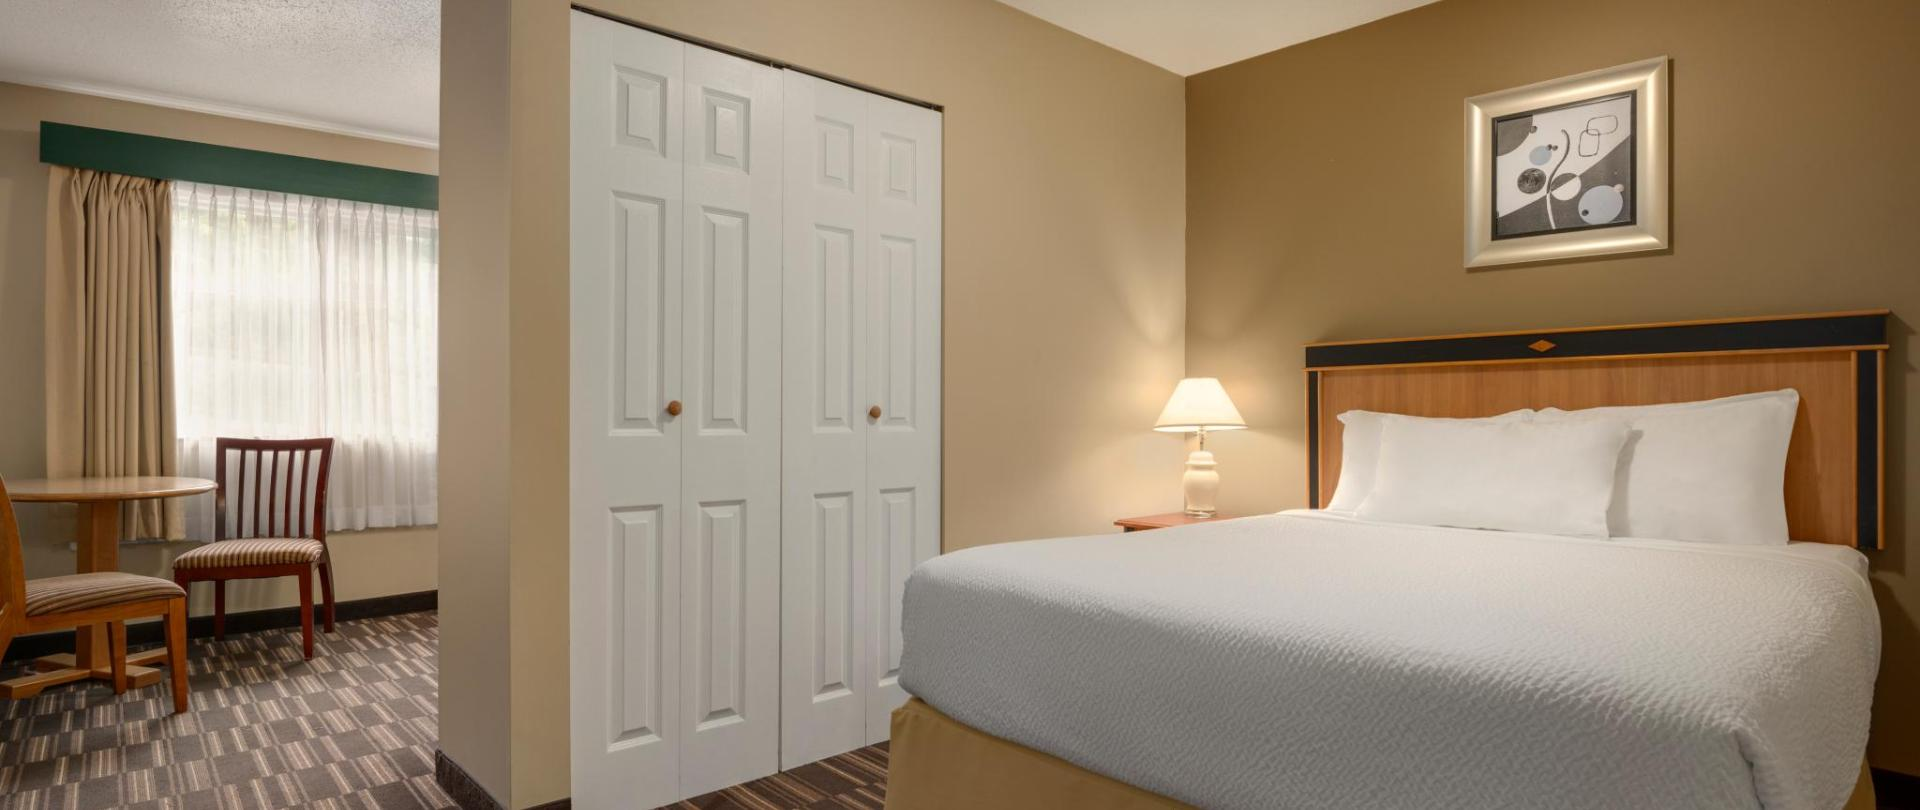 Days Inn Nanaimo - 3 Queen Beds Studio Suite - 1446686.jpg